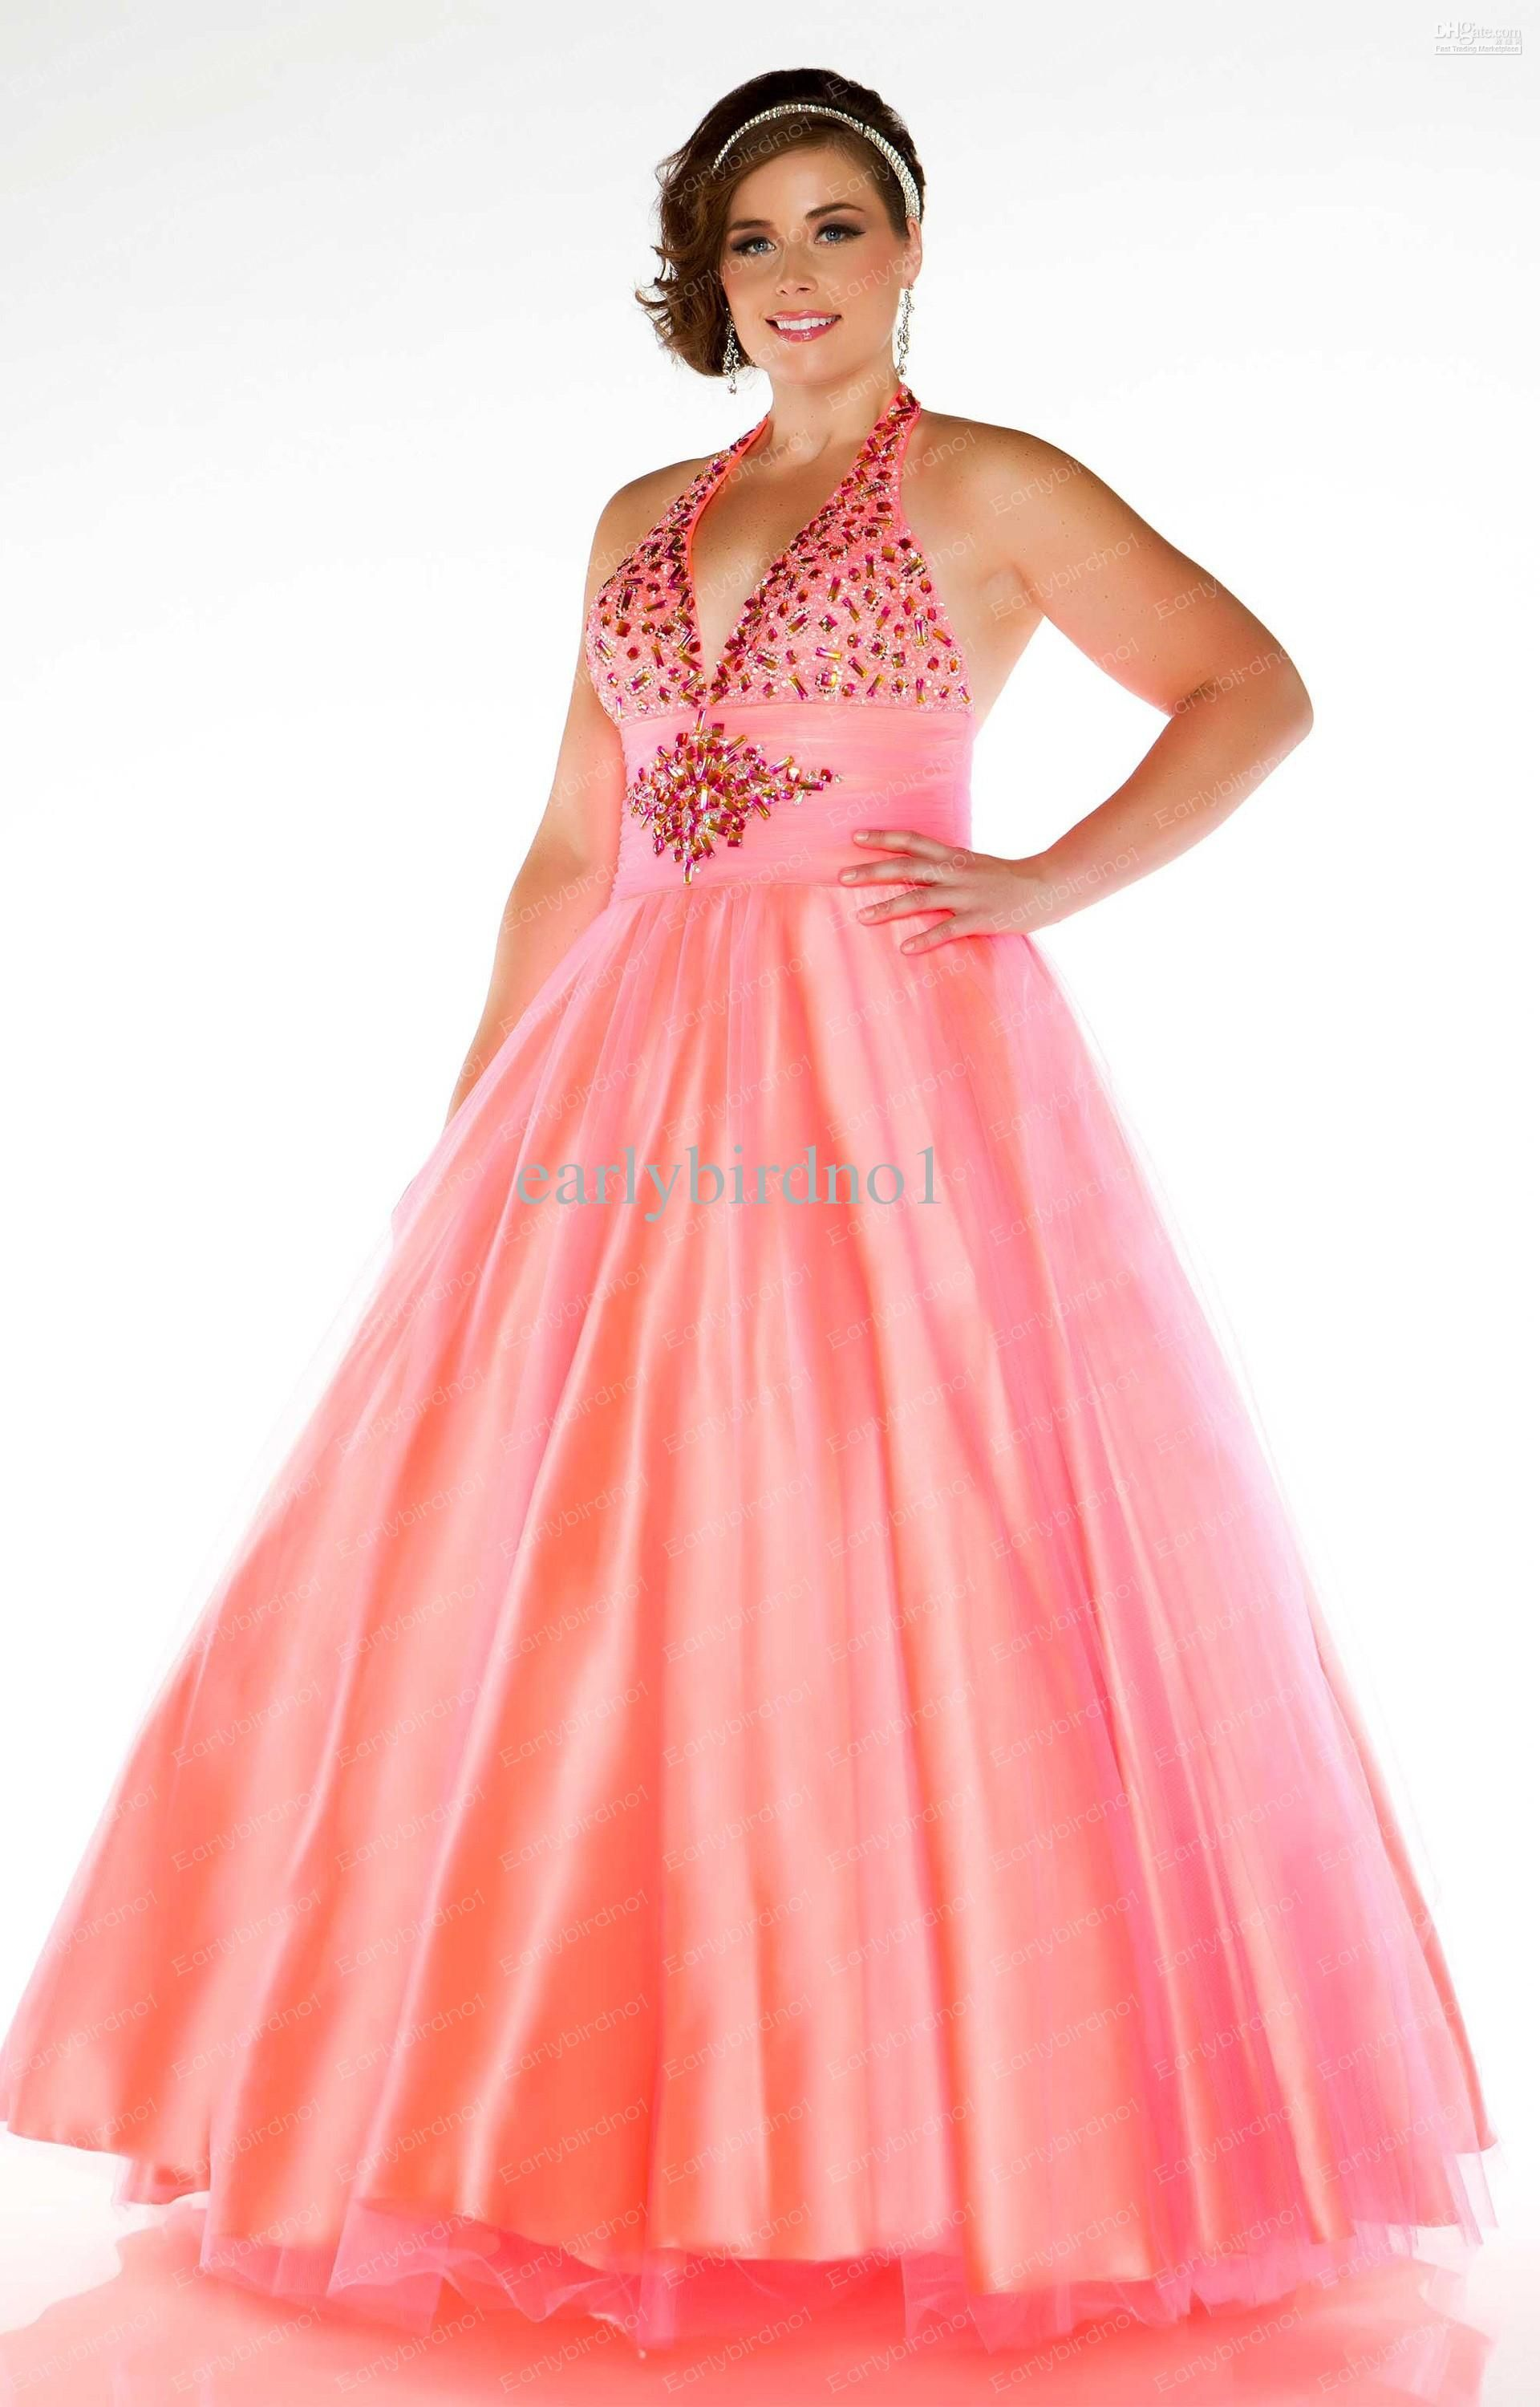 cheap plus size prom dresses 29025837 | Fashion | Pinterest